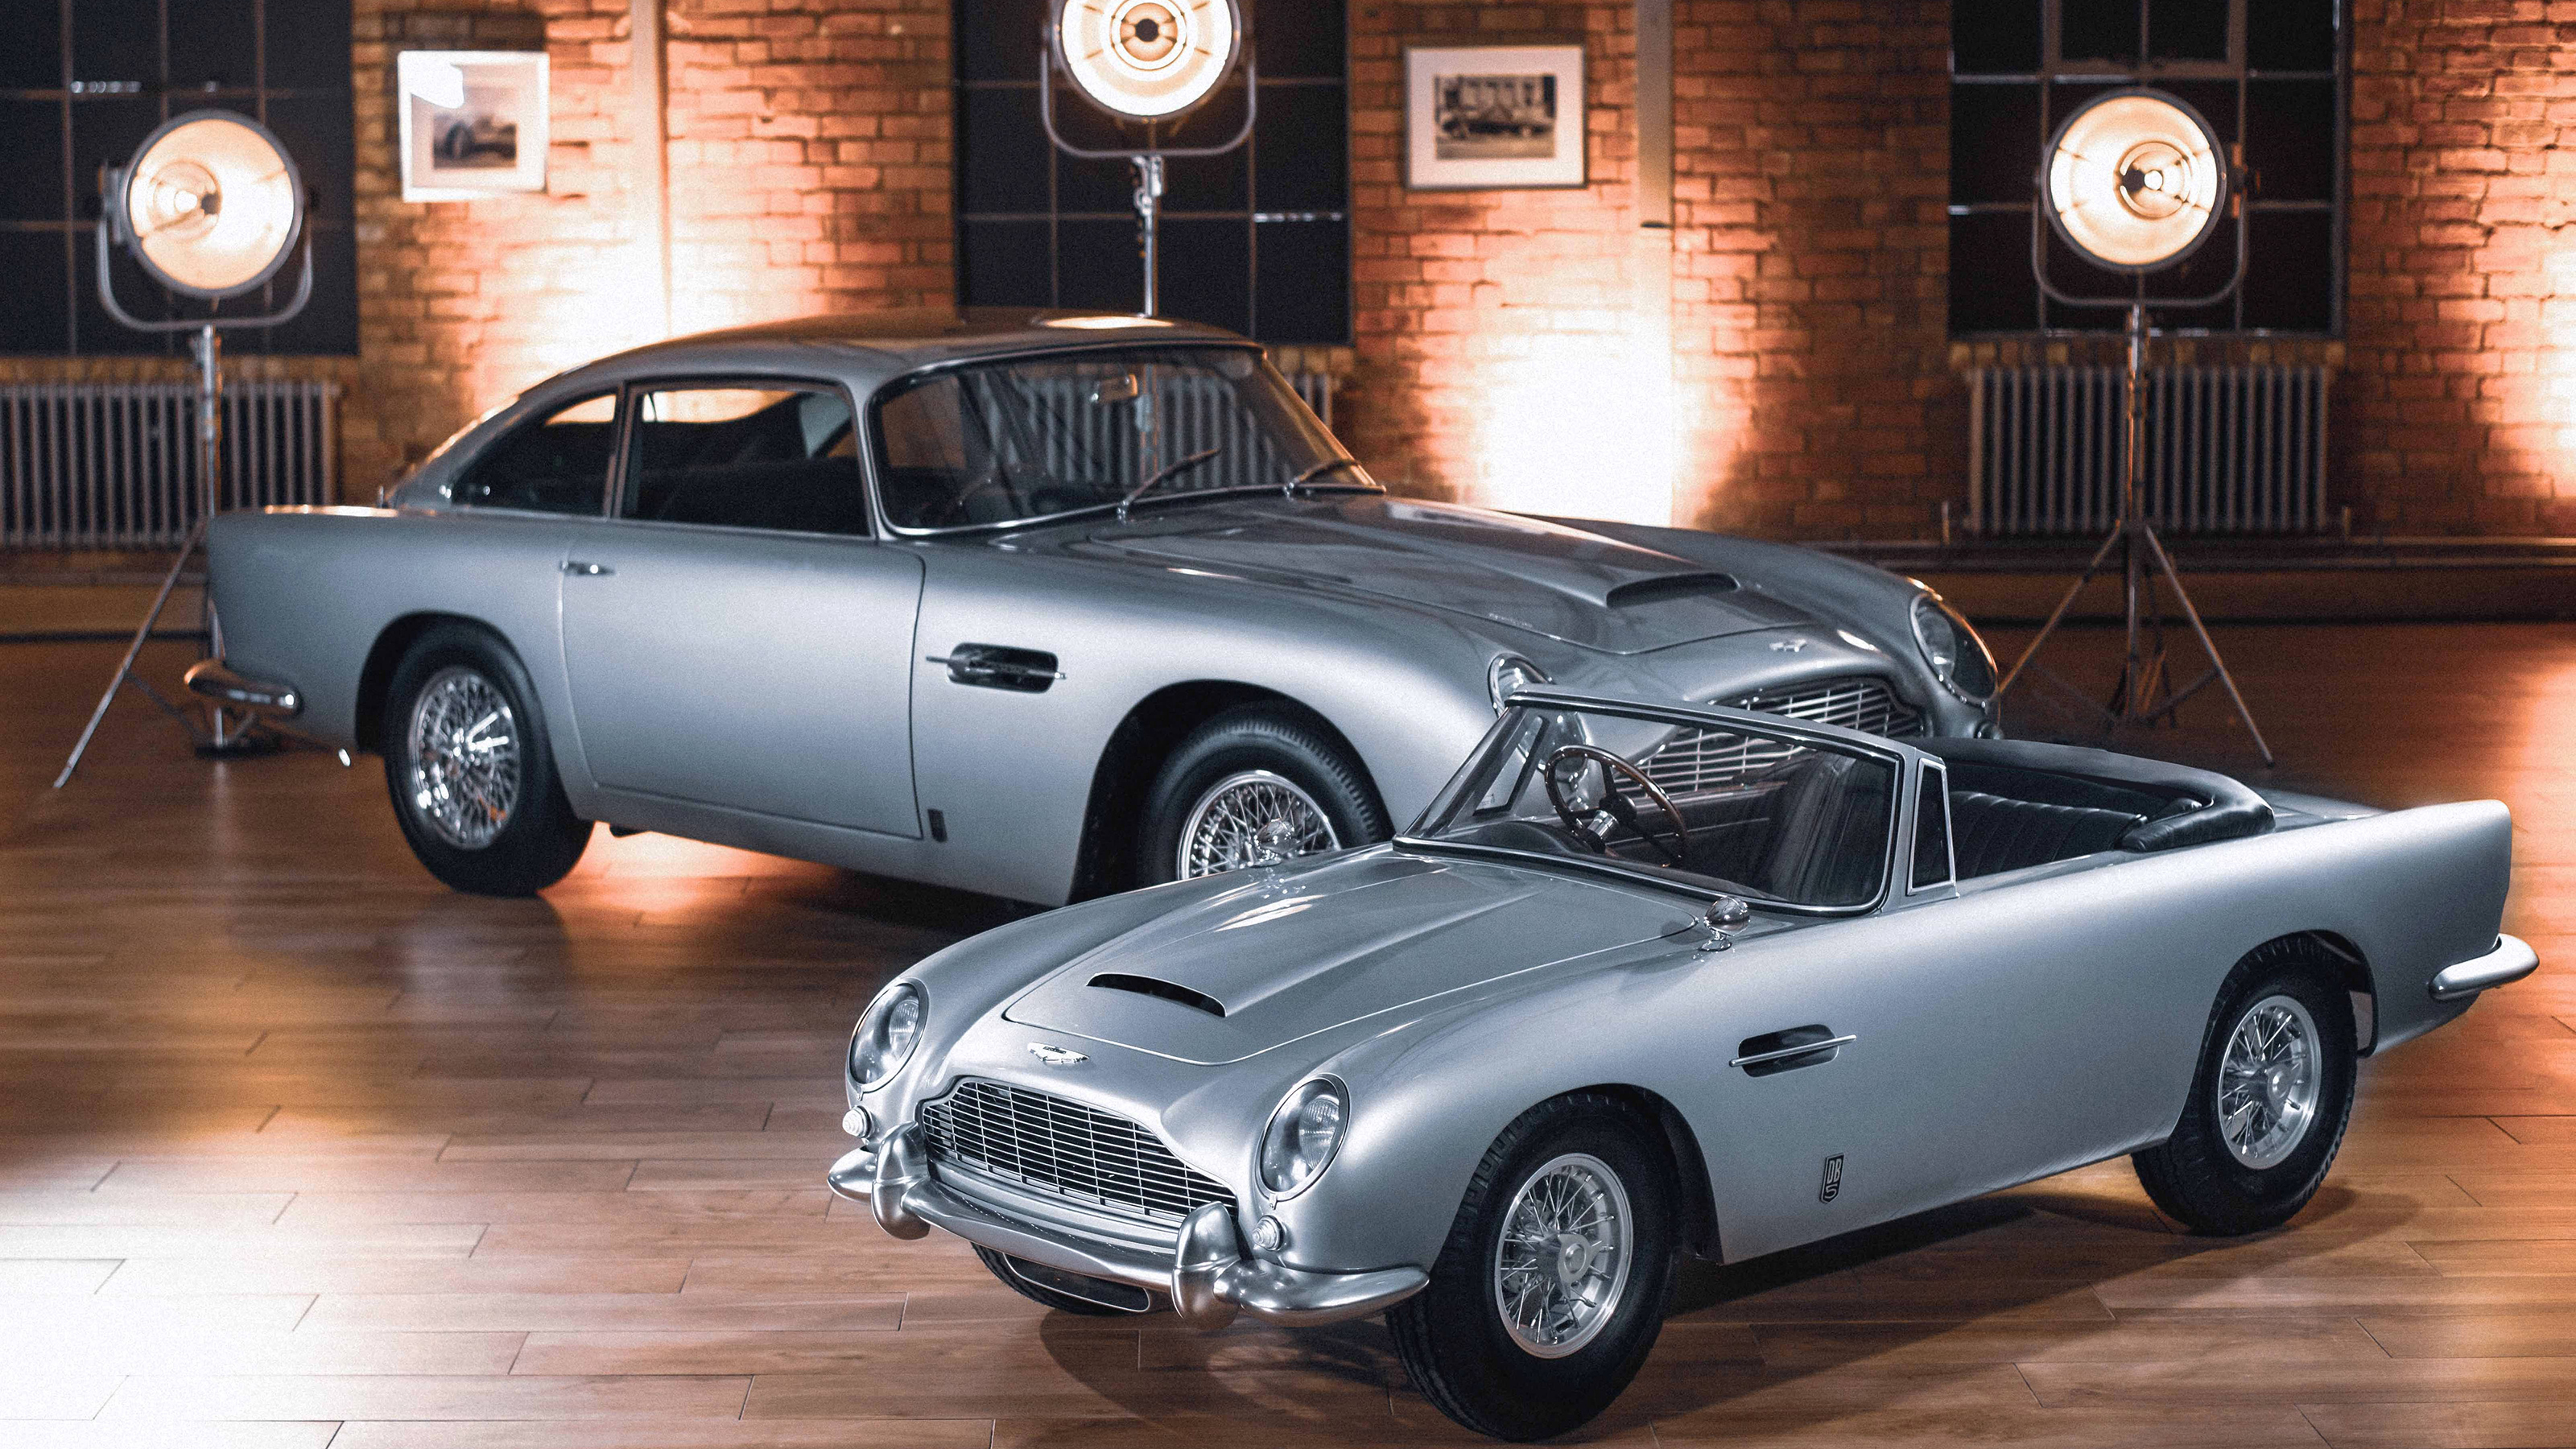 Aston Martin Db5 Junior Is A 42 000 40mph Electric Toy Car Auto Express